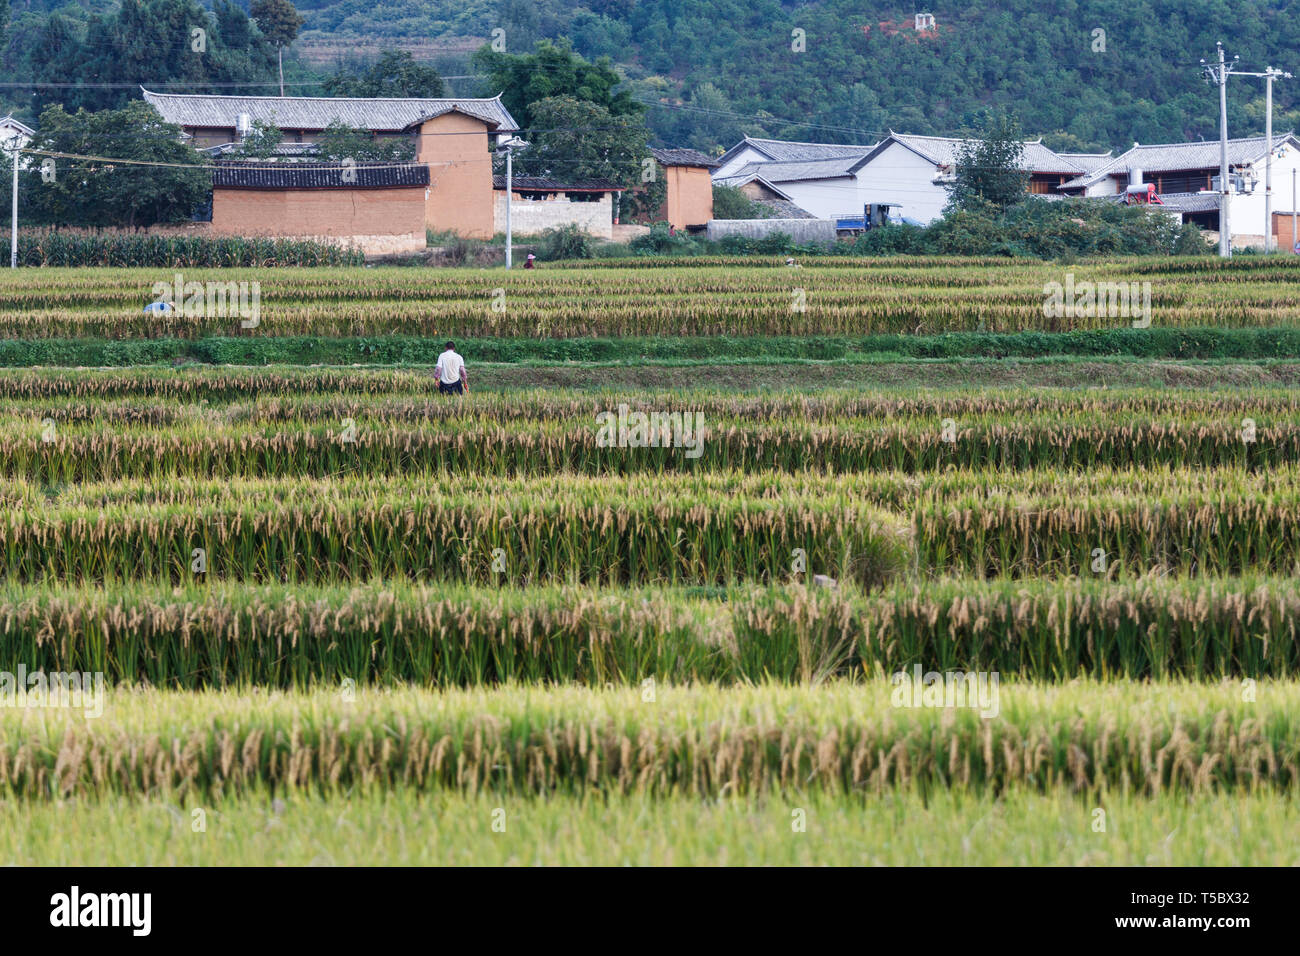 Fully Grown Rice Fields During Harvest In Chinese